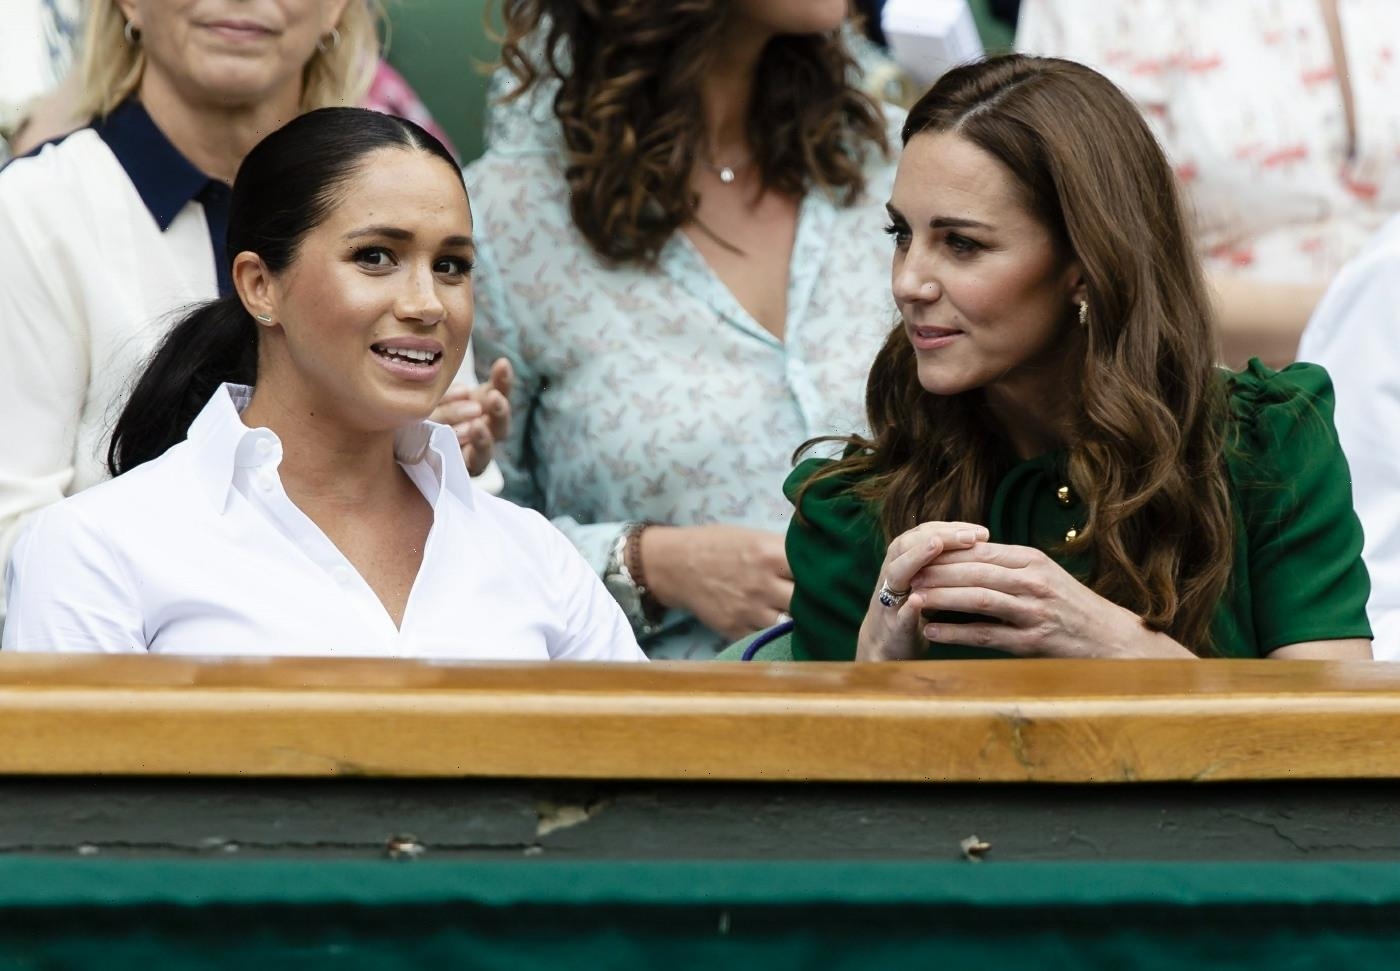 Duchess Meghan wants to make a documentary about Kates charity work?  LOL.